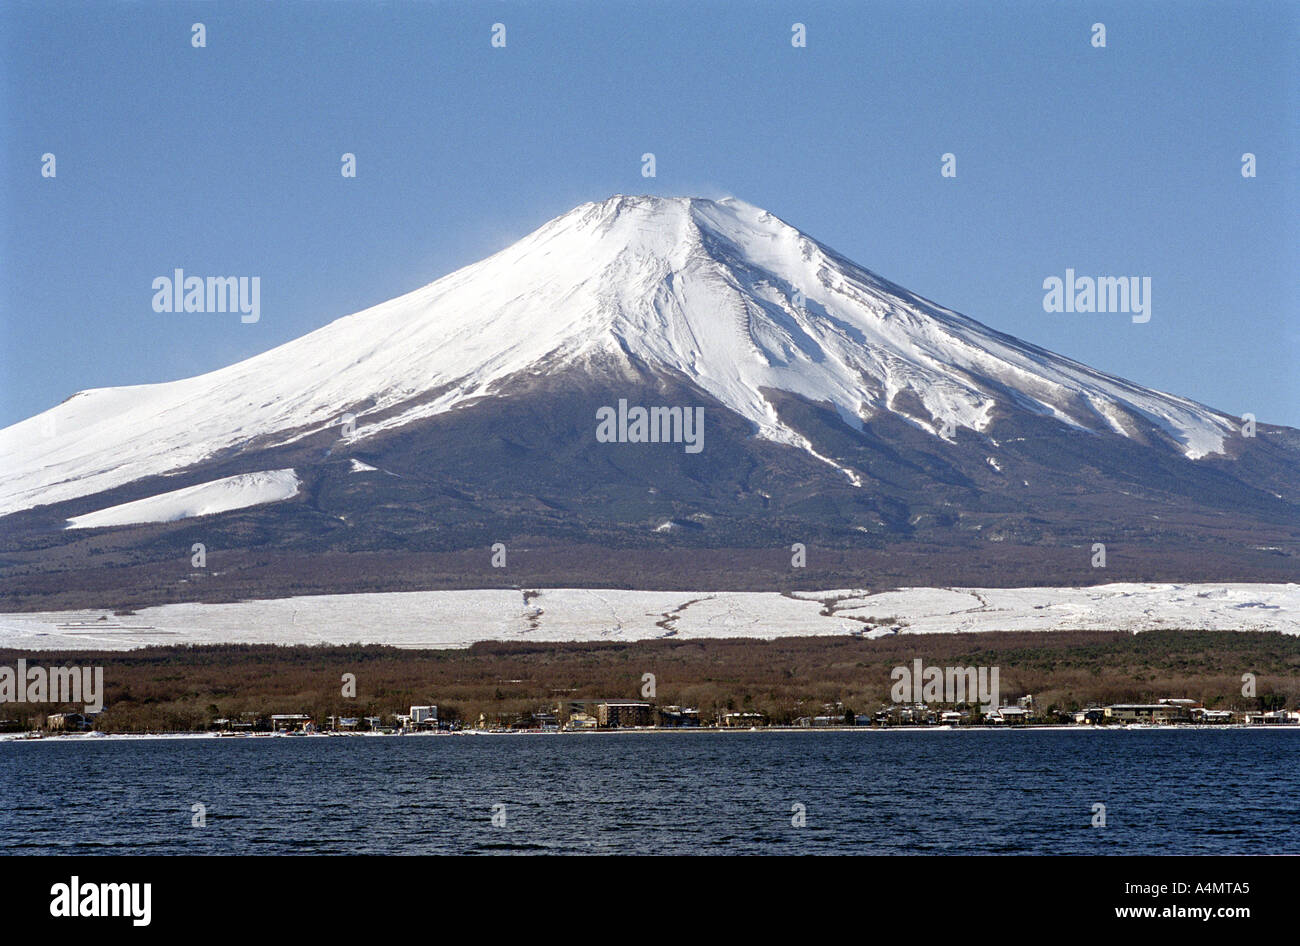 Snow capped Mount Fuji in Japan viewed in winter against a bright blue sky. - Stock Image